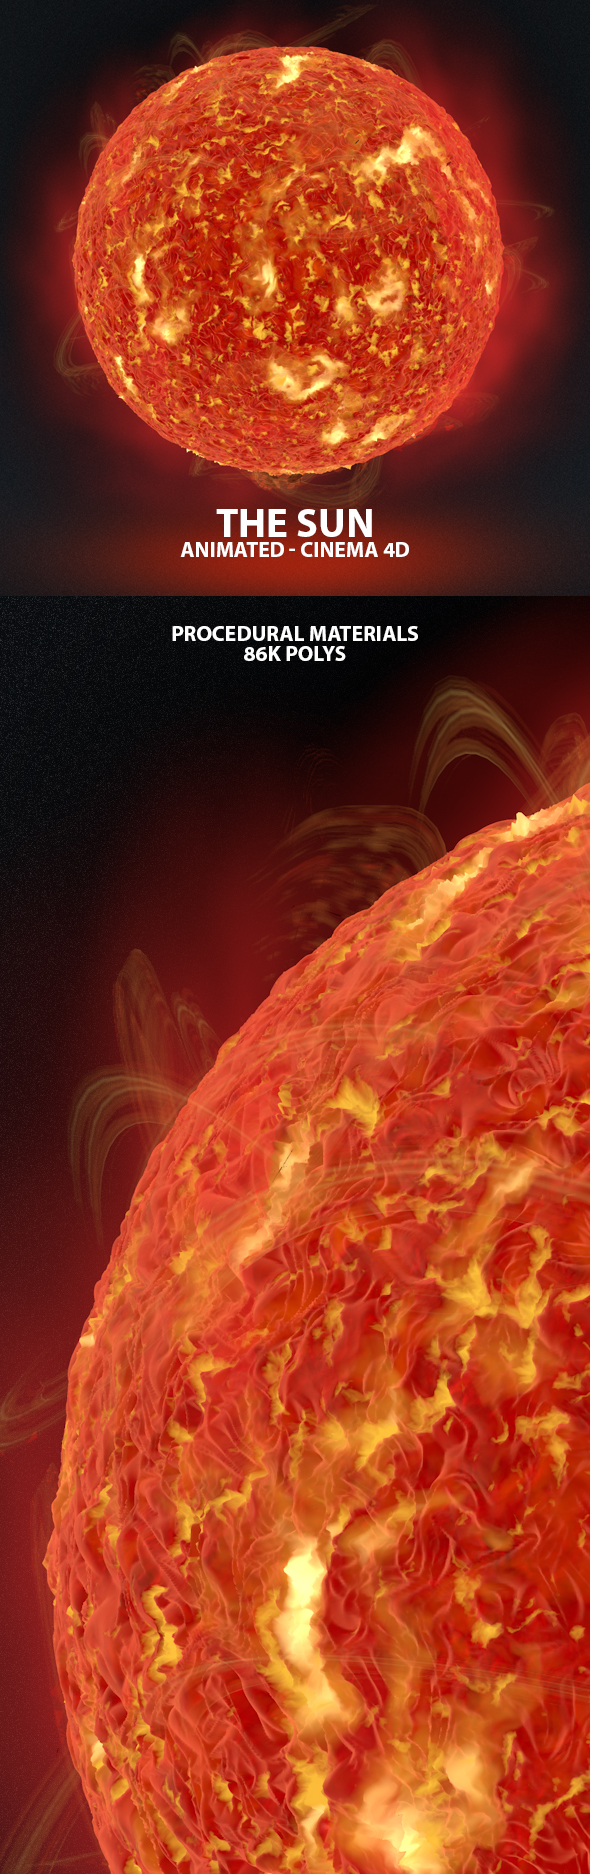 The Sun Animated High Poly 3D Model - 3DOcean Item for Sale